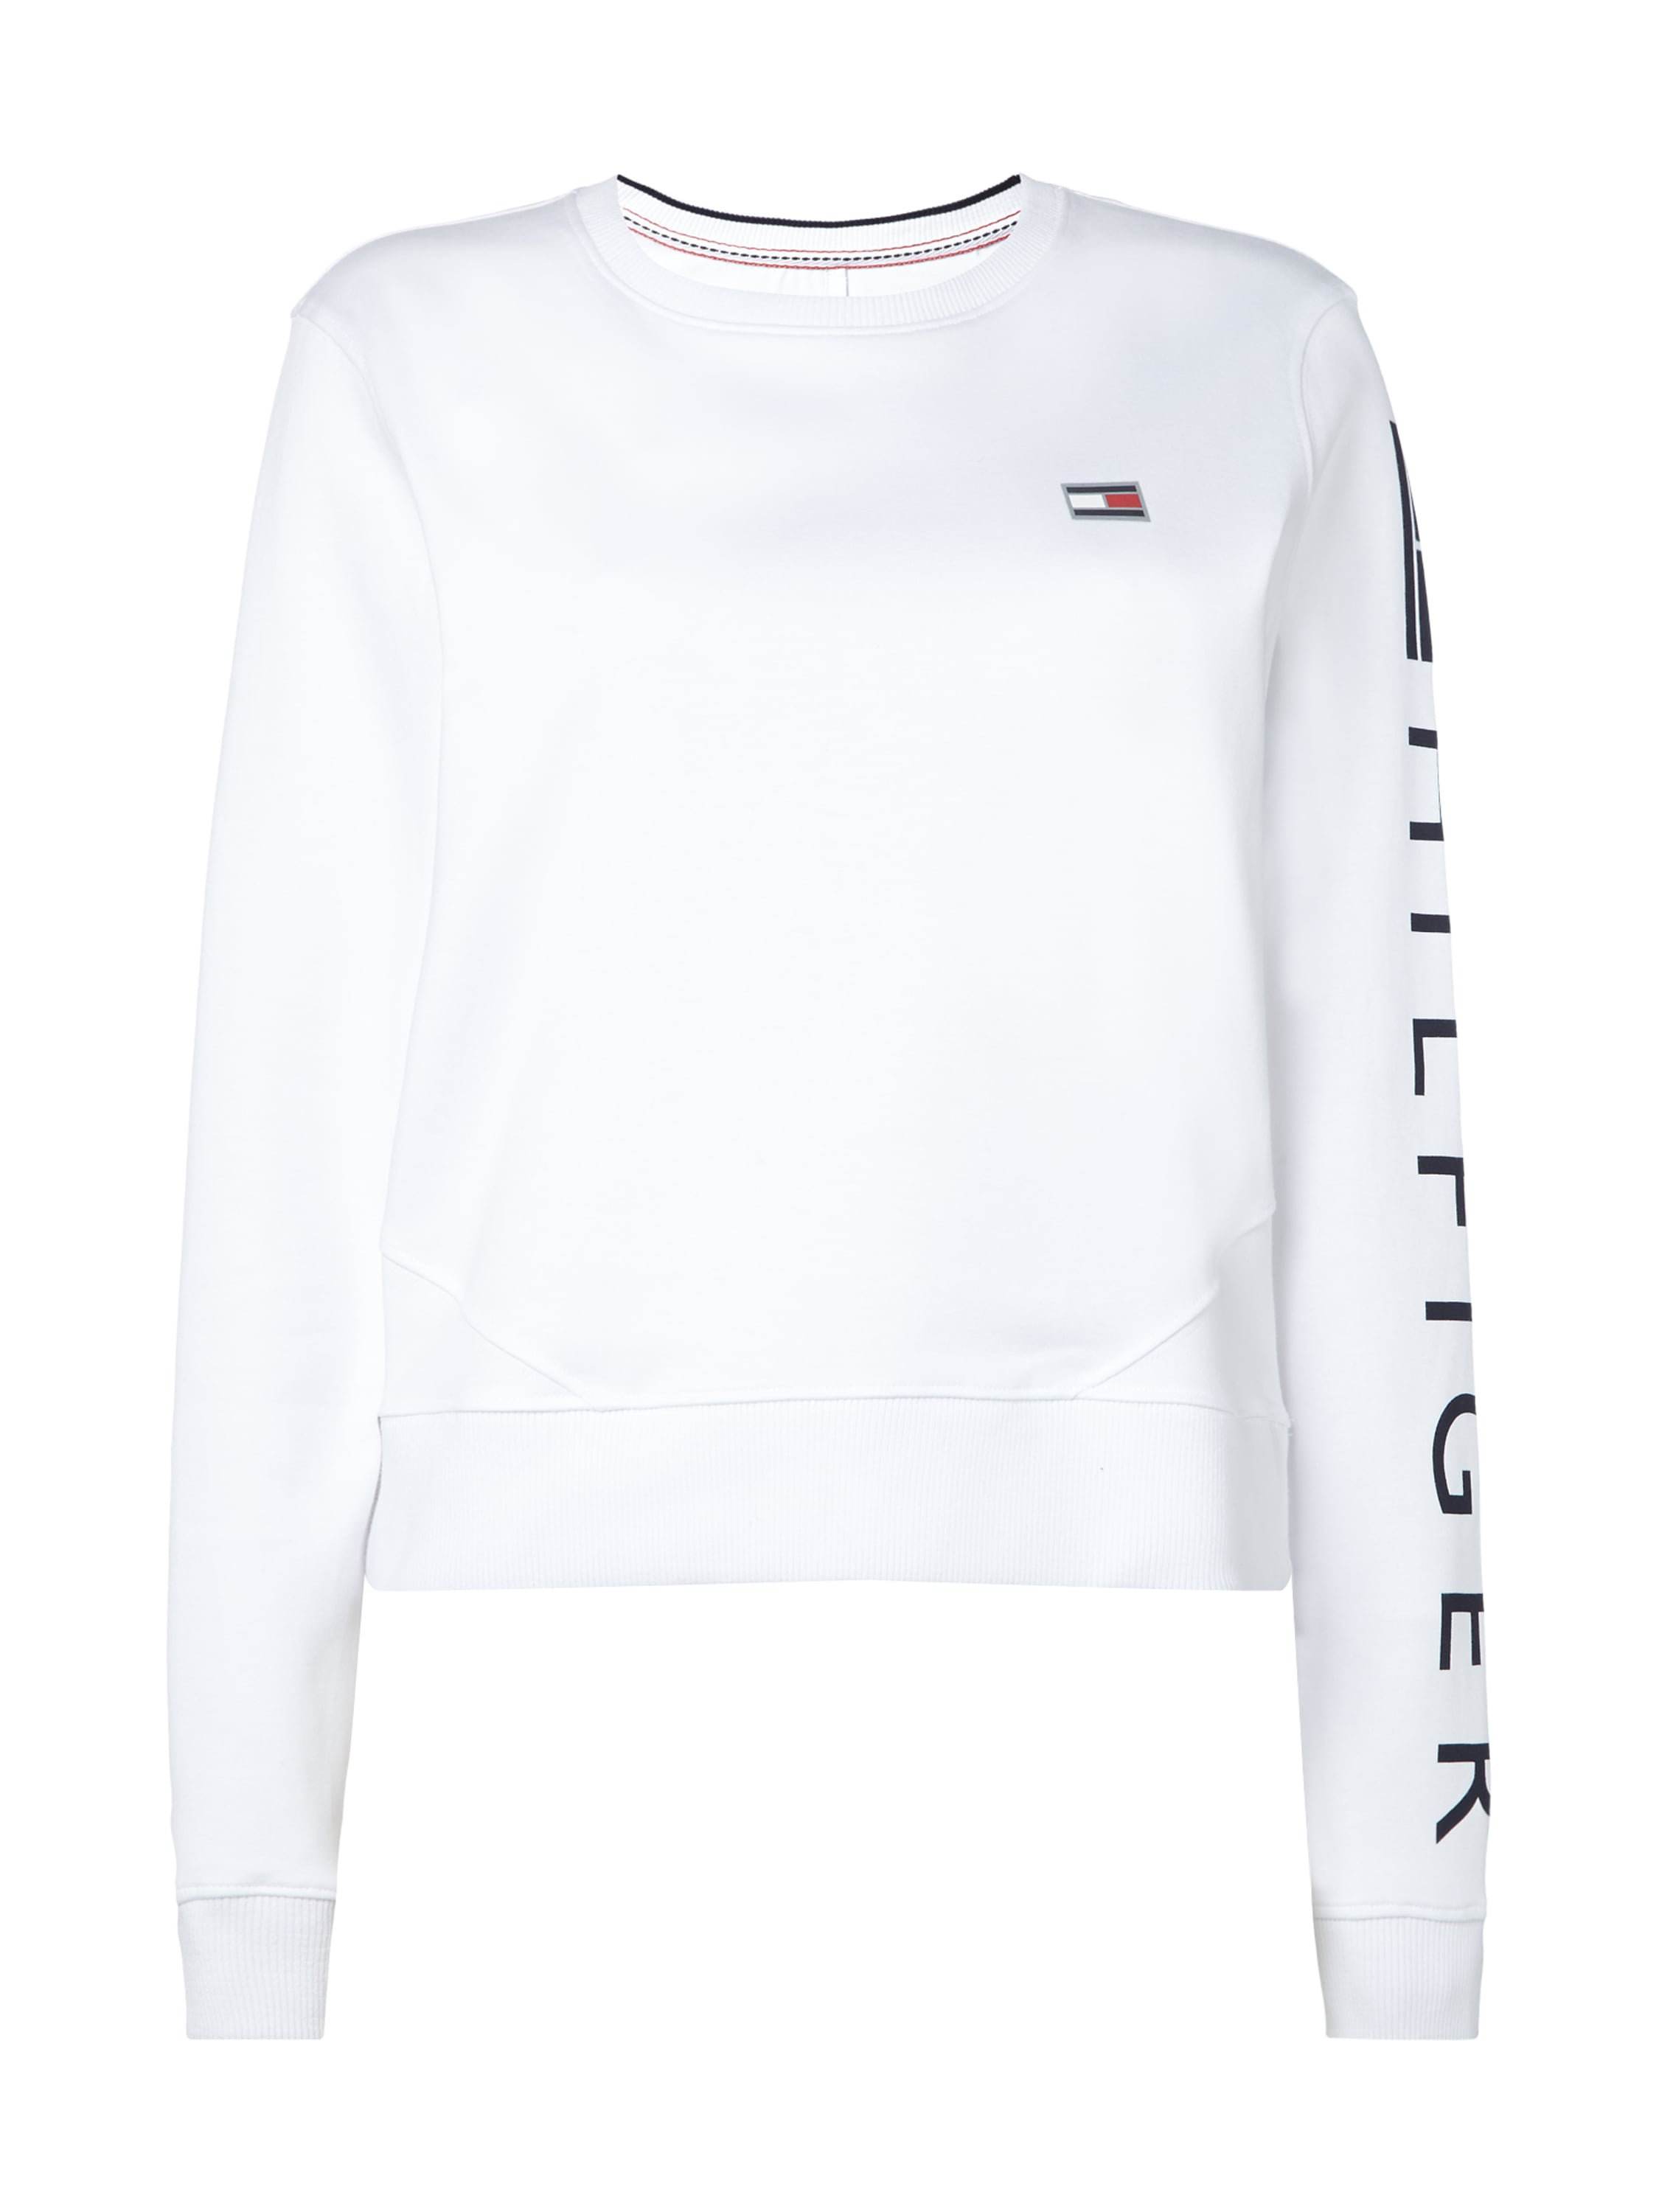 tommy hilfiger sweatshirt mit logo prints in wei online. Black Bedroom Furniture Sets. Home Design Ideas